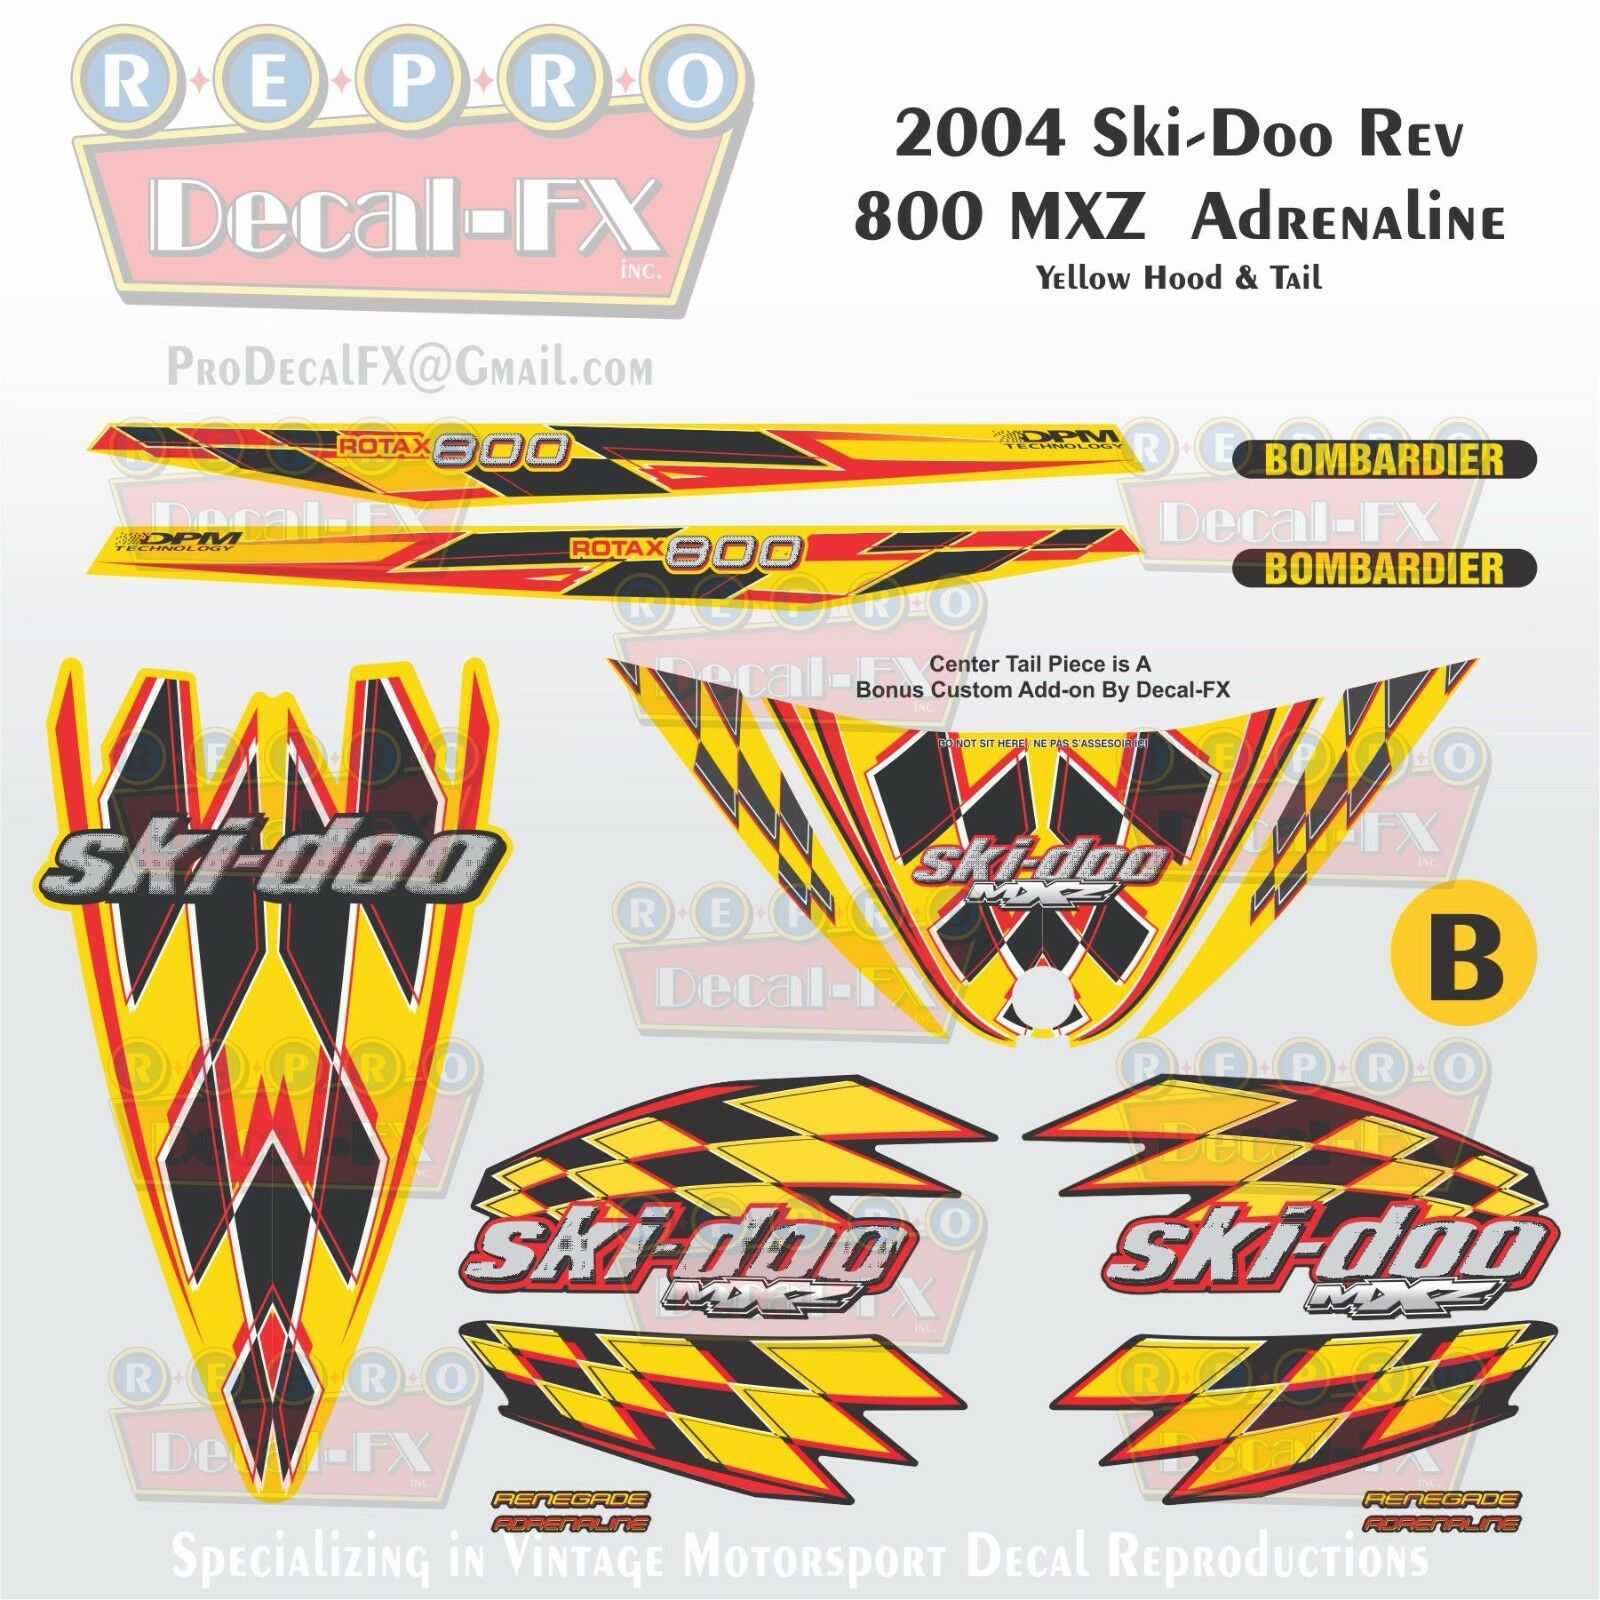 2004 Ski-doo MXZ800 Yellow Hood & Tail Rev Reproduction Vinyl Decal Set 16Pc